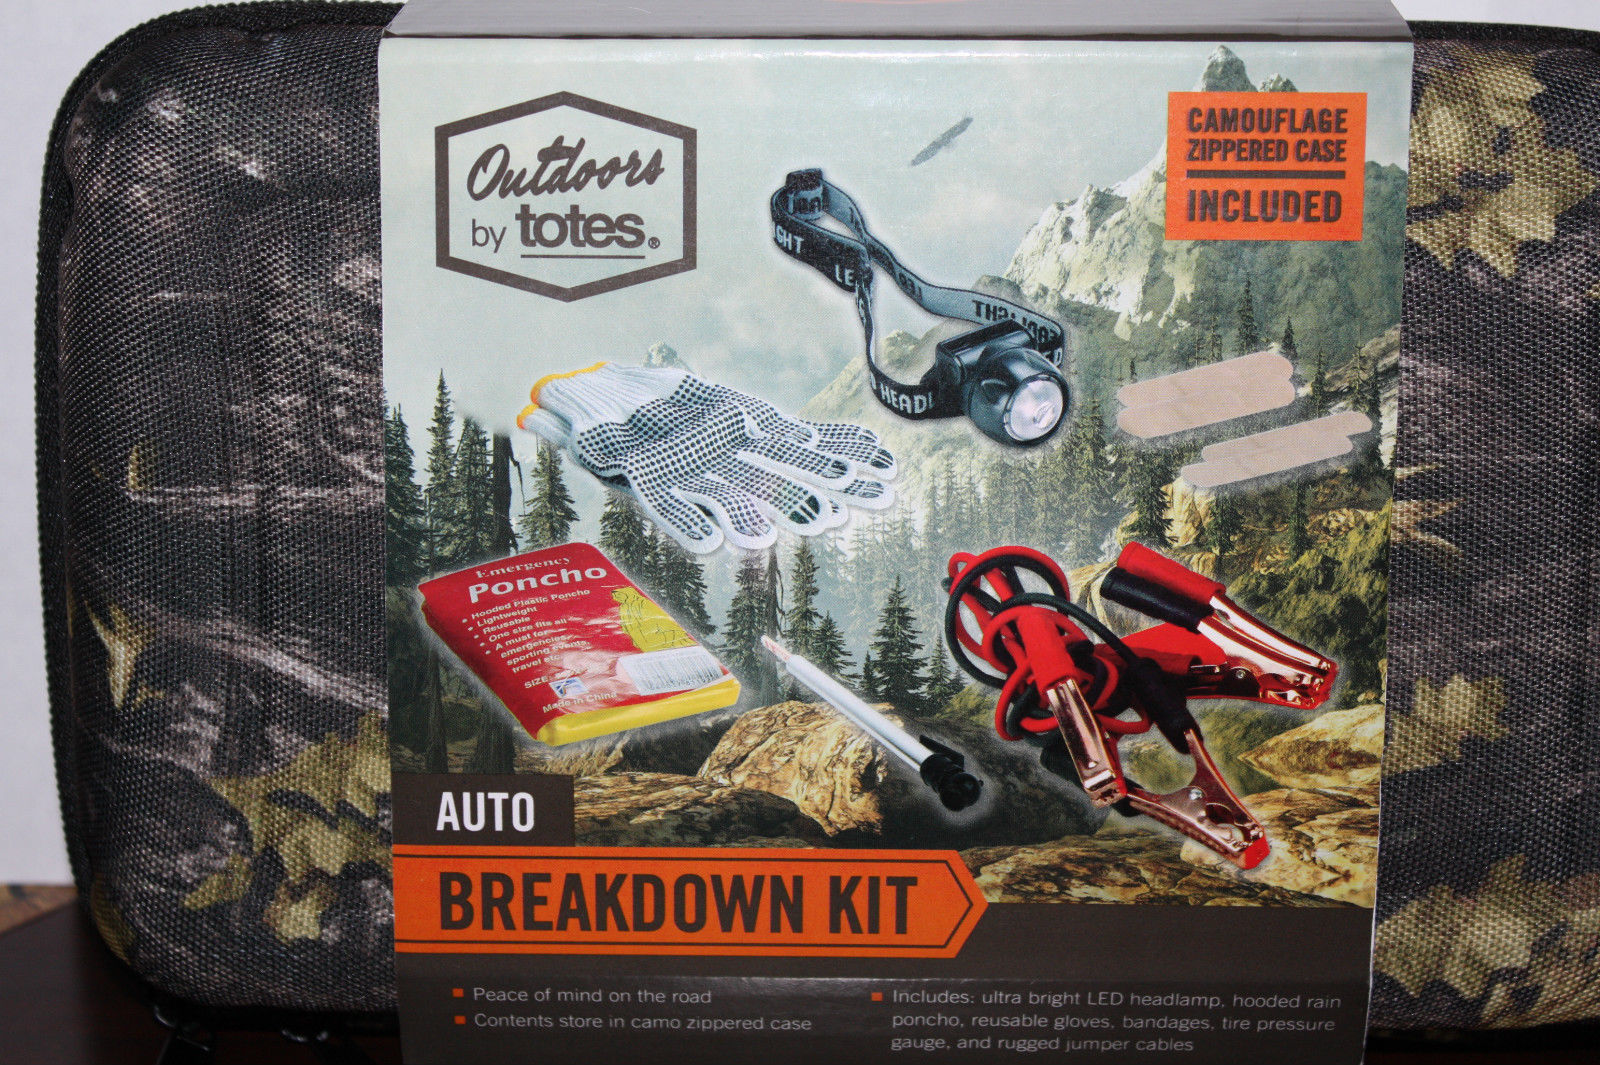 Outdoors By Totes 6 Piece Auto Breakdown Kit In Camo Zippered Case 09548